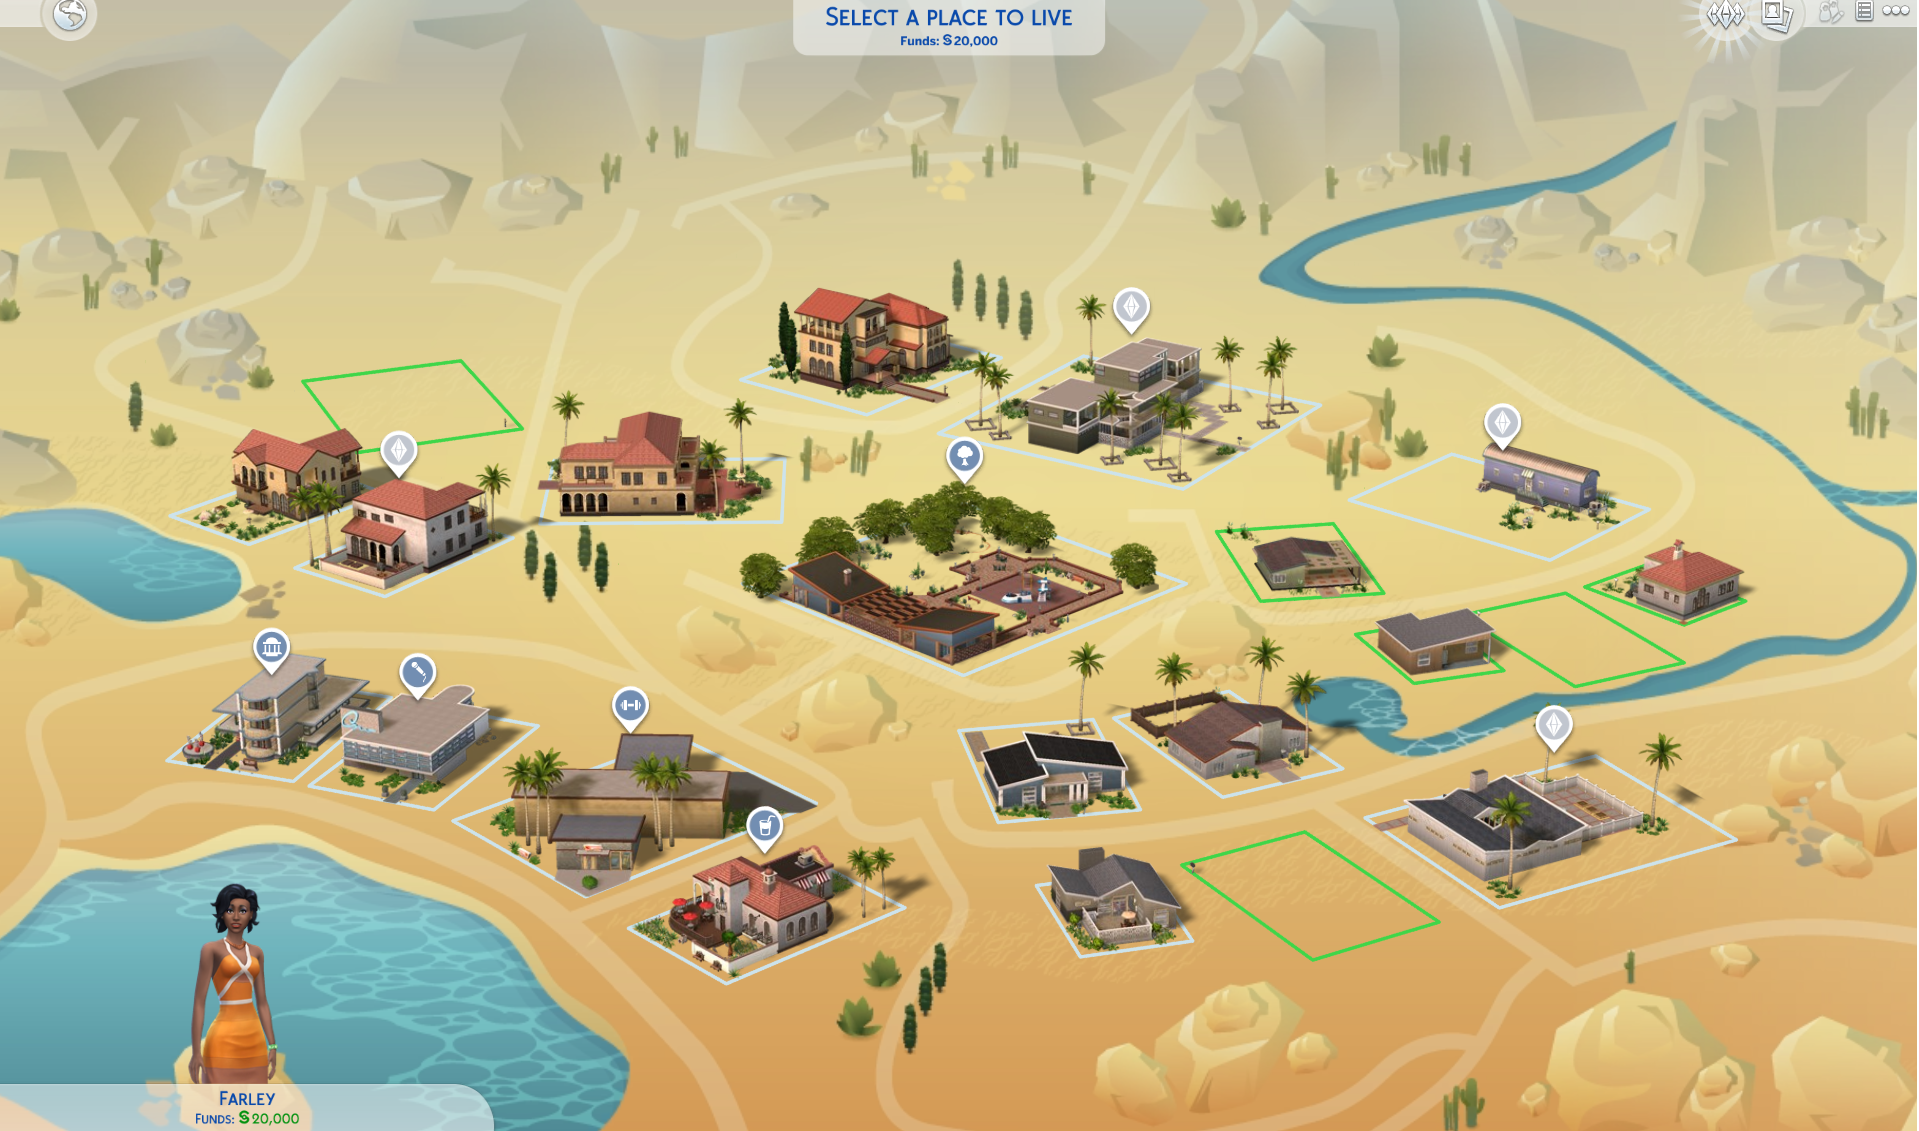 The sims 4 colored world maps coming soon simsvip click the image for a larger view gumiabroncs Image collections